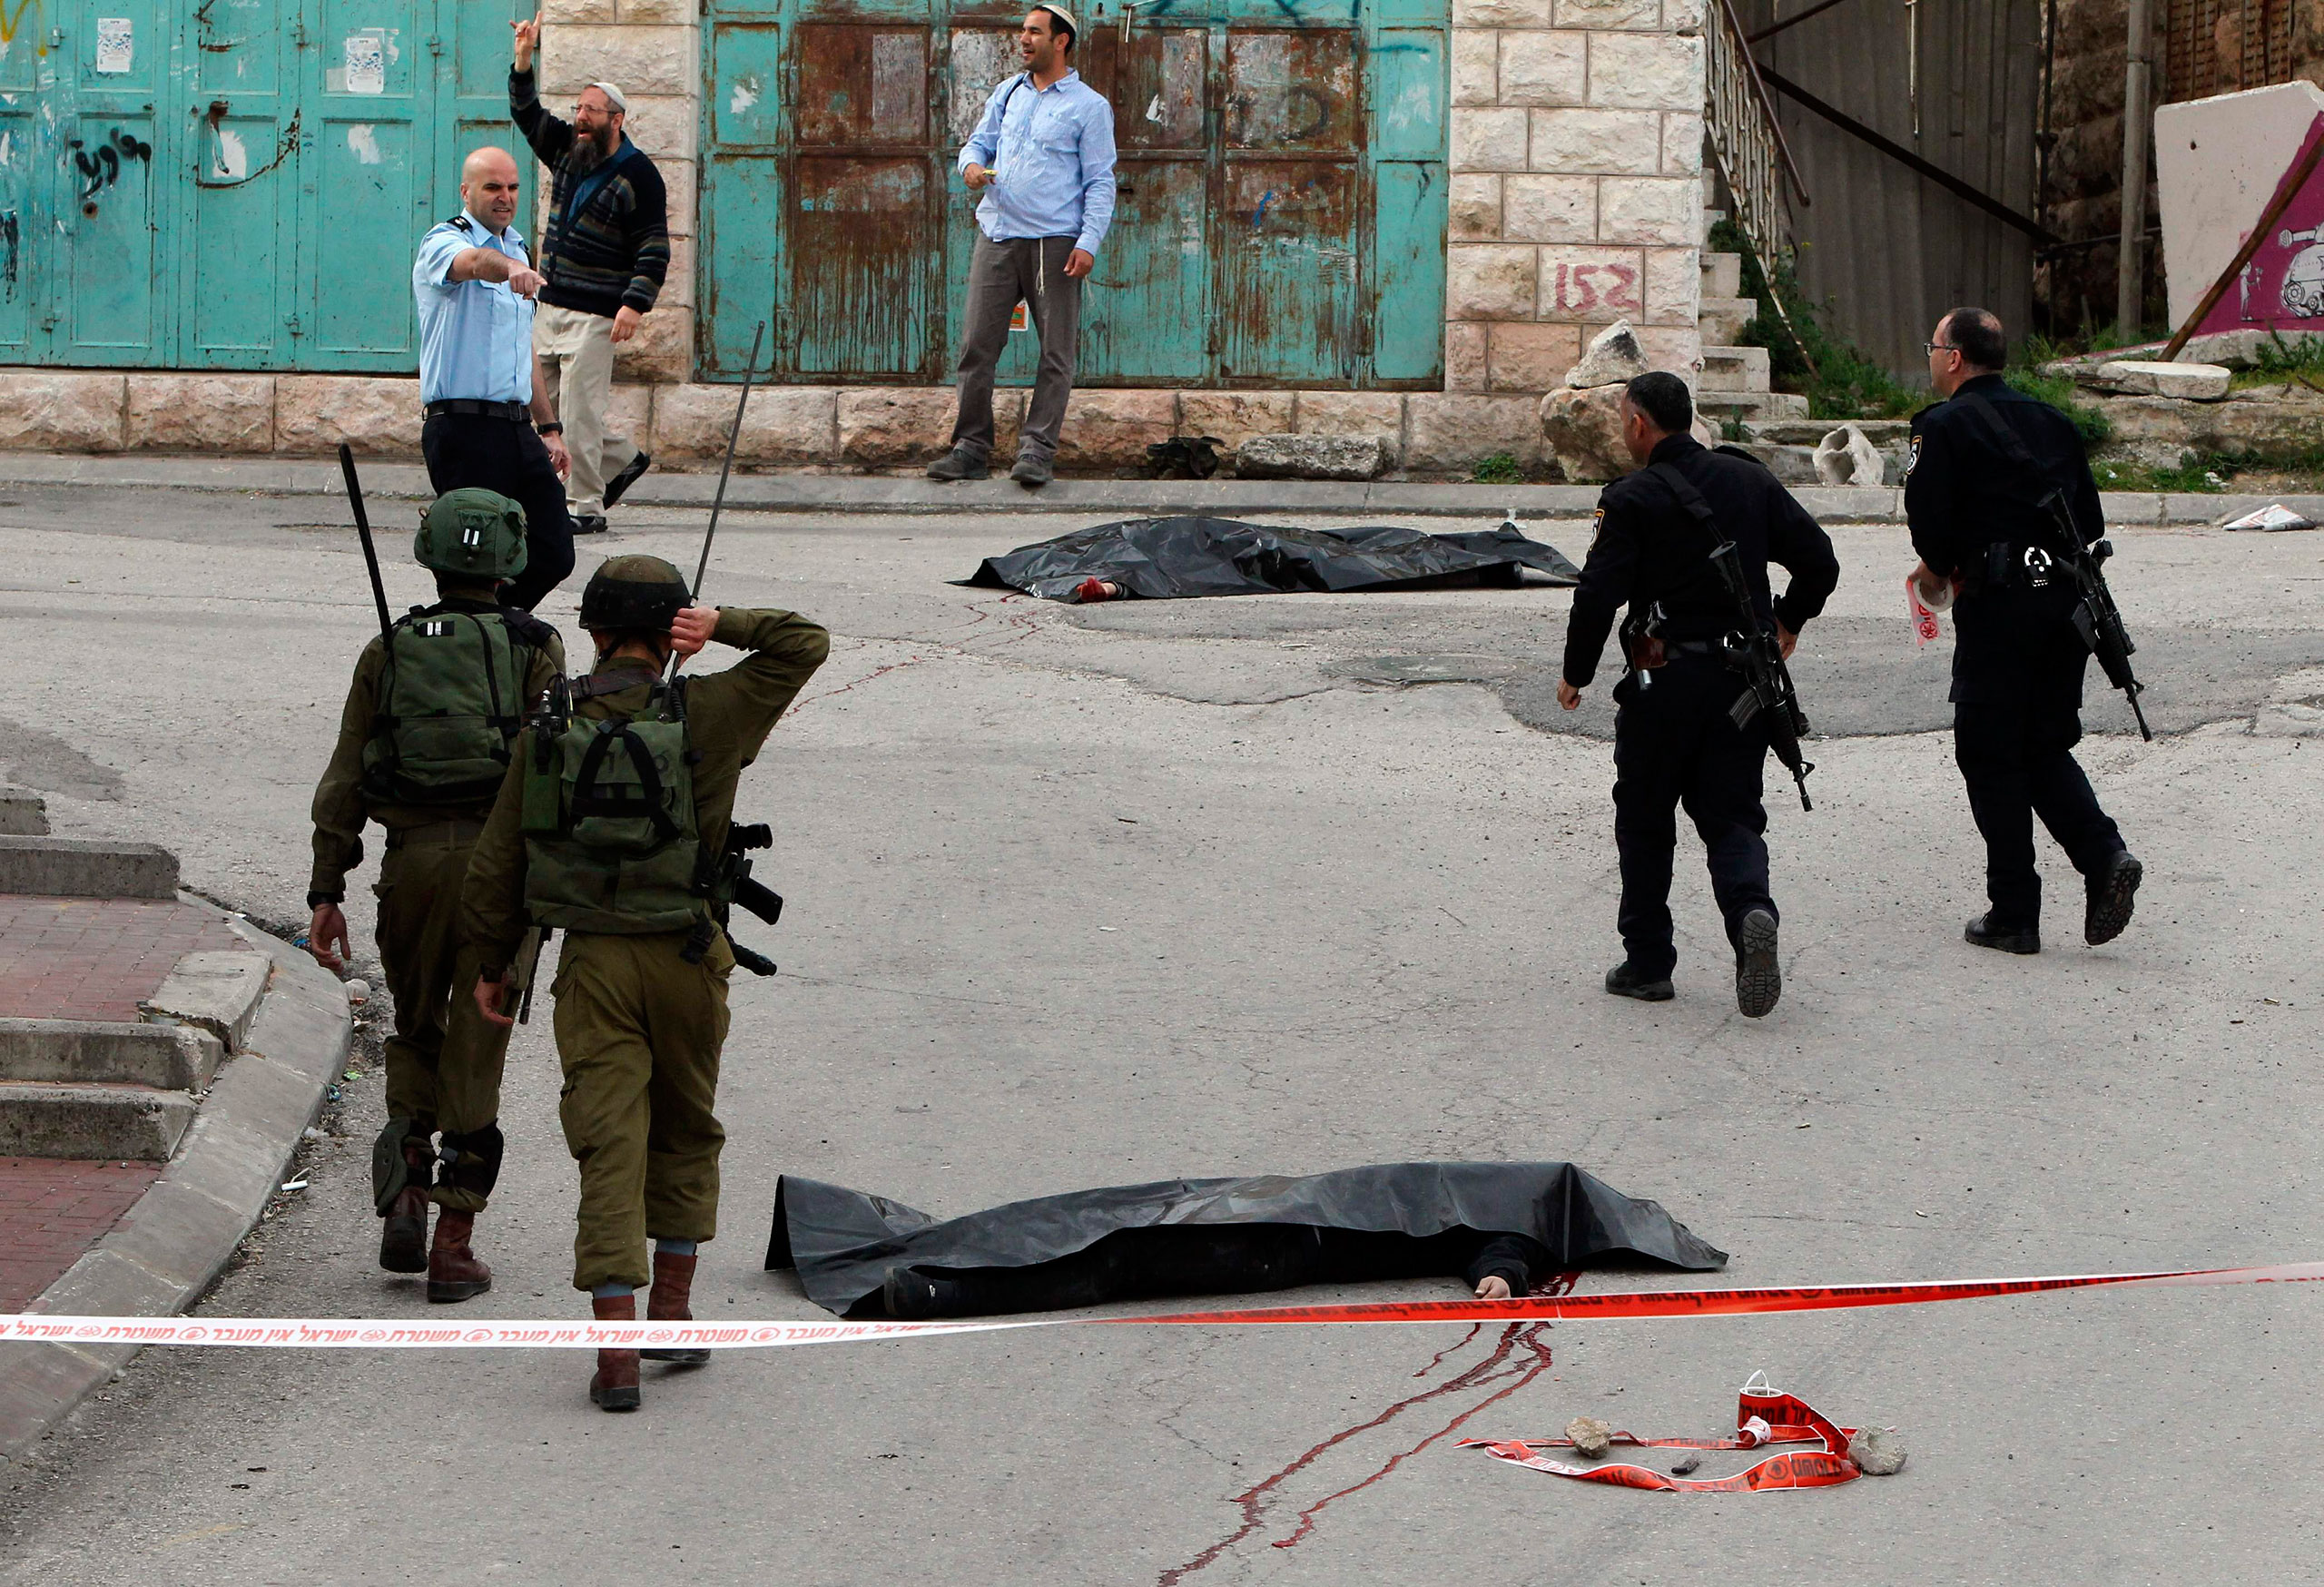 Israeli soldiers and police officers walk near the bodies of two Palestinians who were killed after wounding an Israeli soldier in a knife attack, before being shot dead by troops, in Hebron, West bank, March 24, 2016.